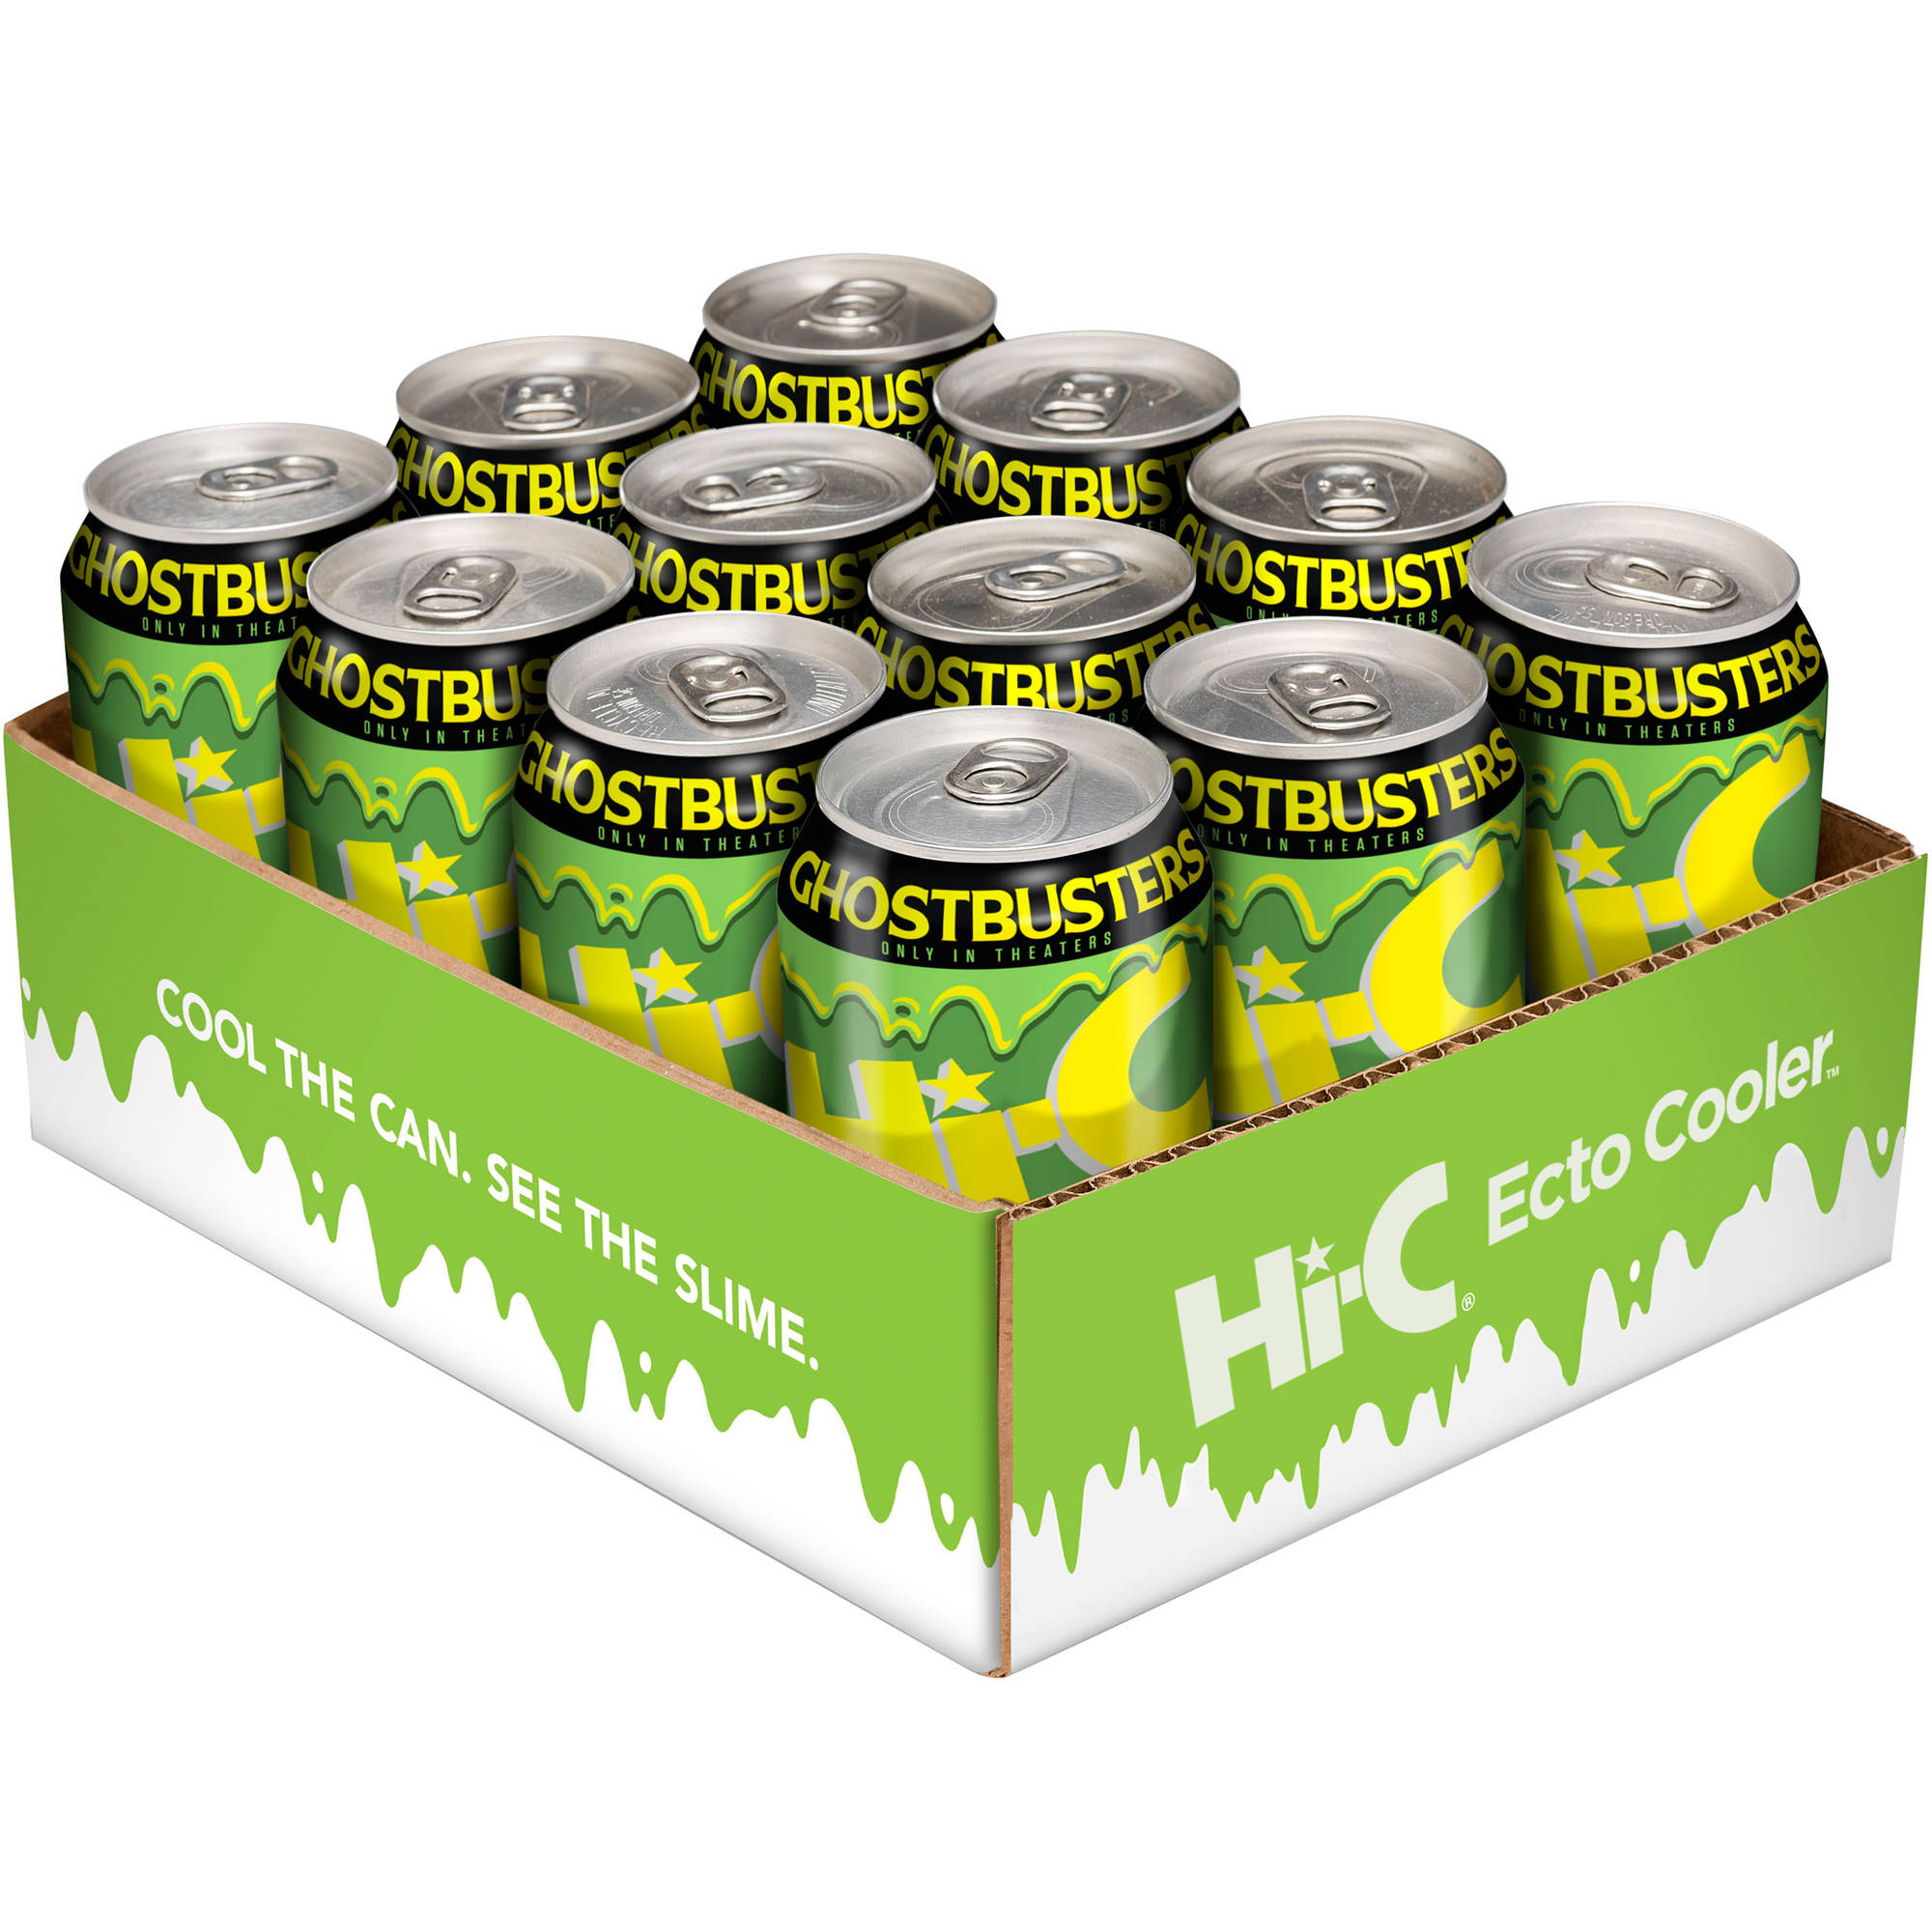 Hi-C Ecto Cooler Citrus Drink, 11.5 fl oz, 12 pack